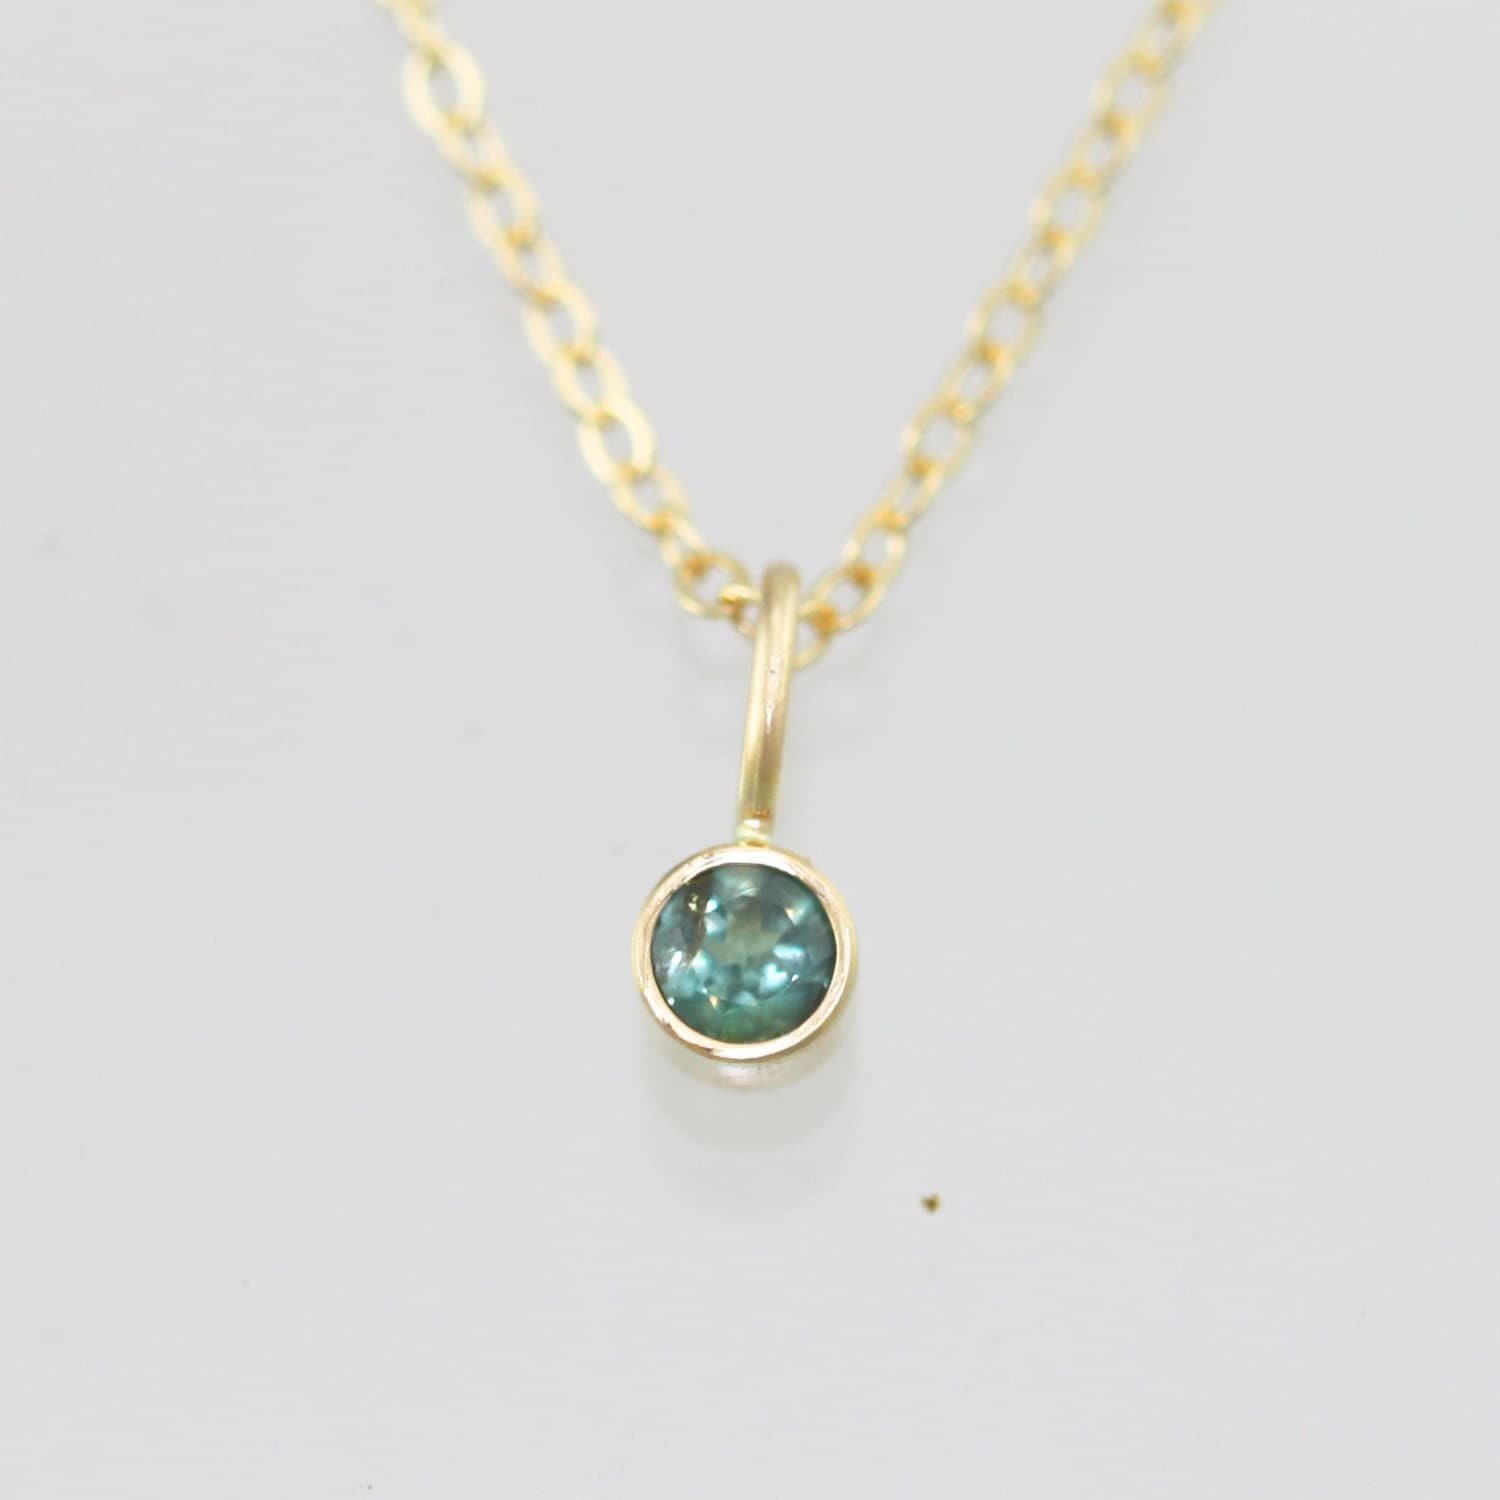 Natural Alexandrite Necklace: Alexandrite Drop Necklace In 14k Yellow Gold 16